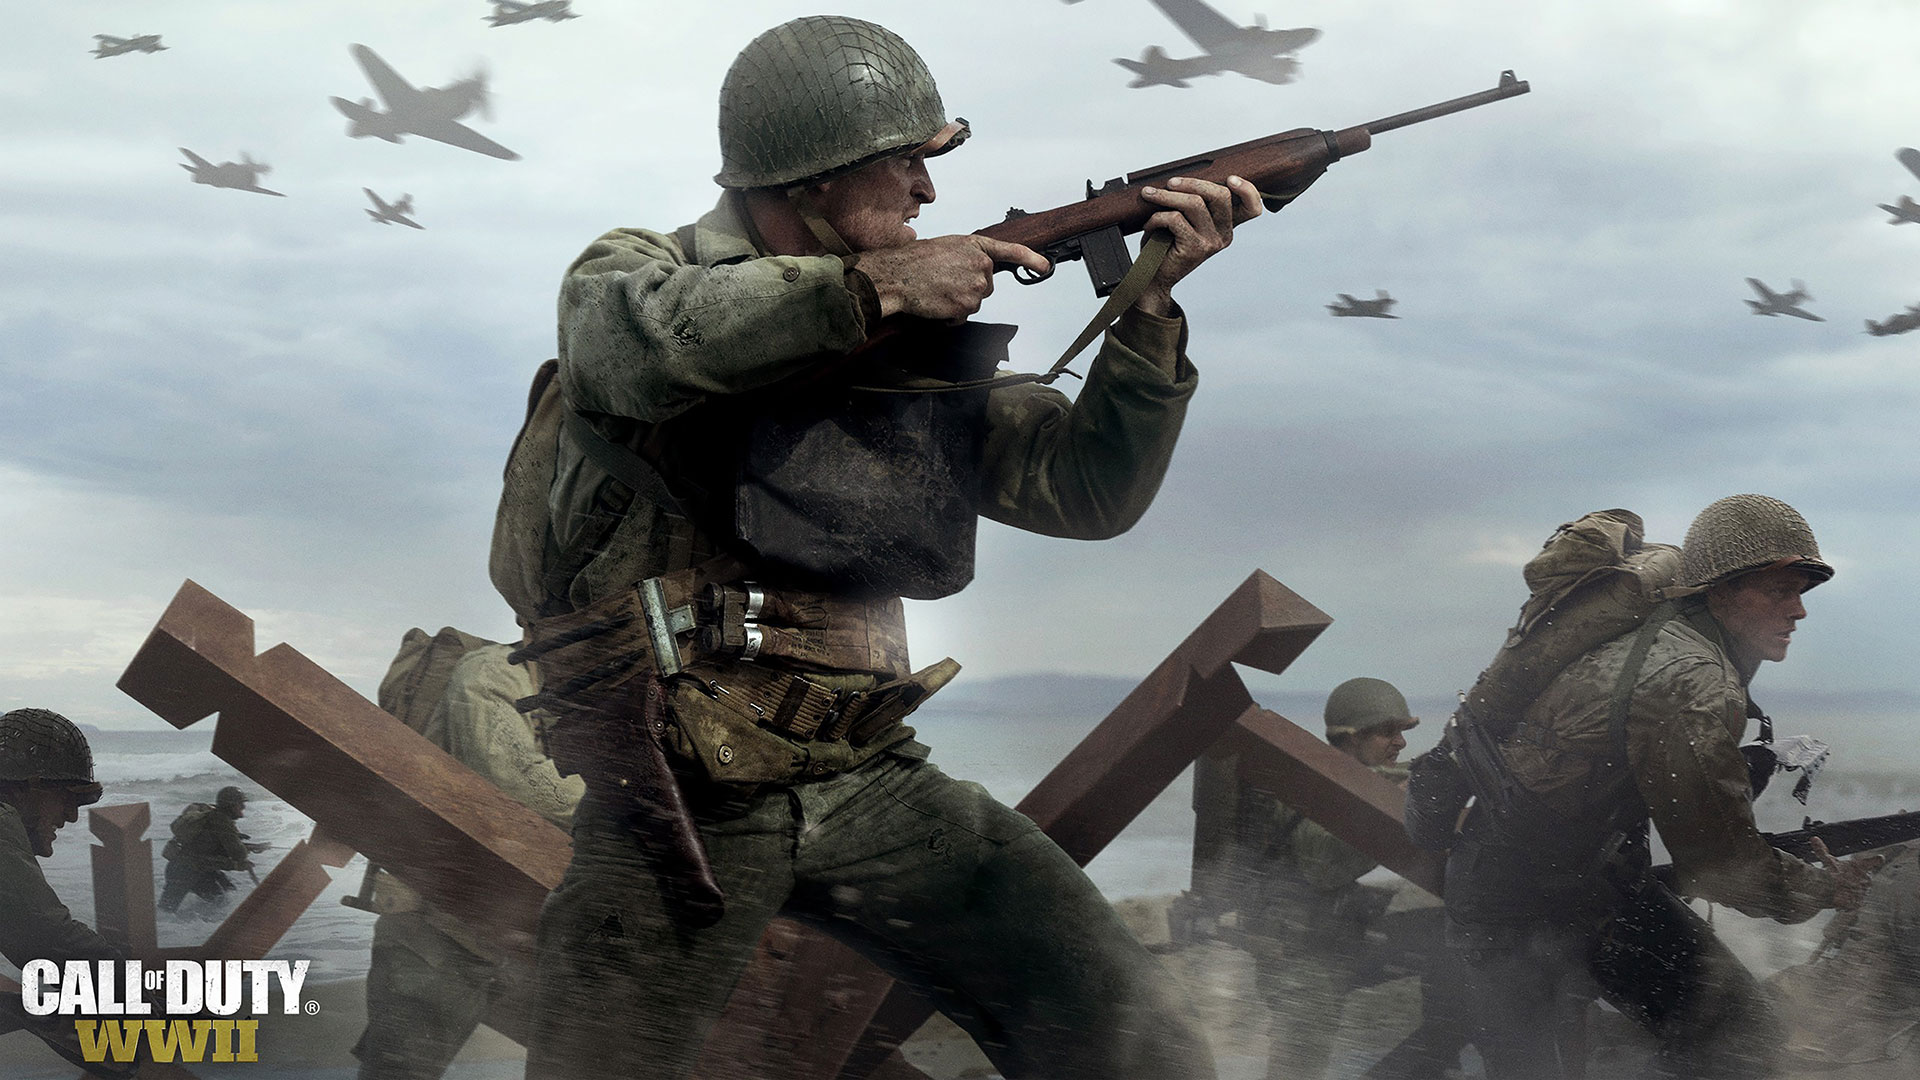 Call of Duty: WWII's launch brings in $500 million, doubling Infinite Warfare